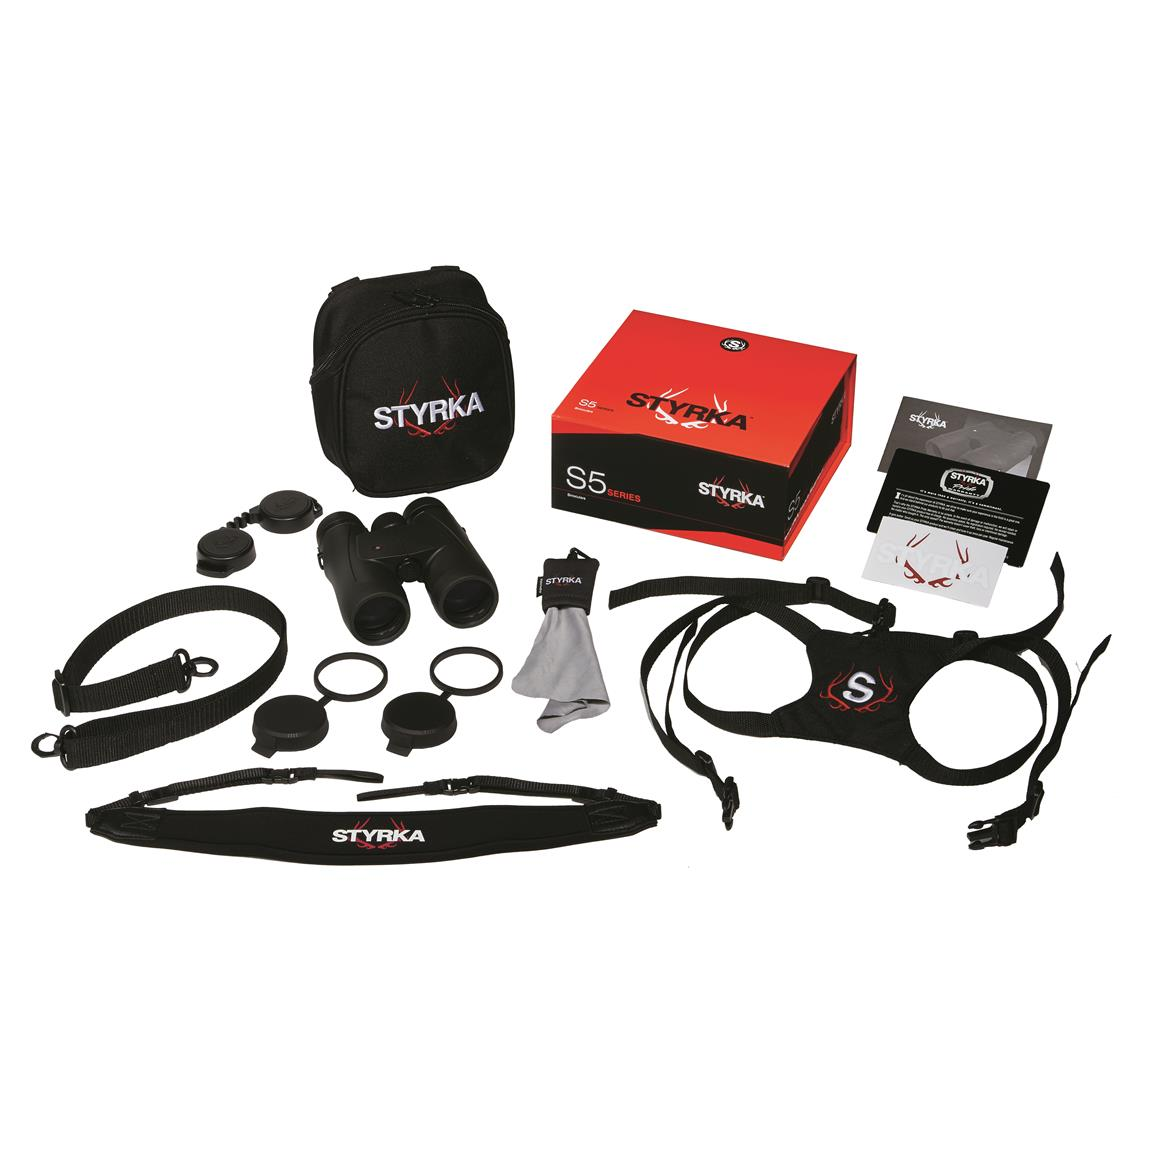 Includes tethered lens covers, padded neck strap, Spudz lens cleaning cloth and deluxe carrying case with harness straps